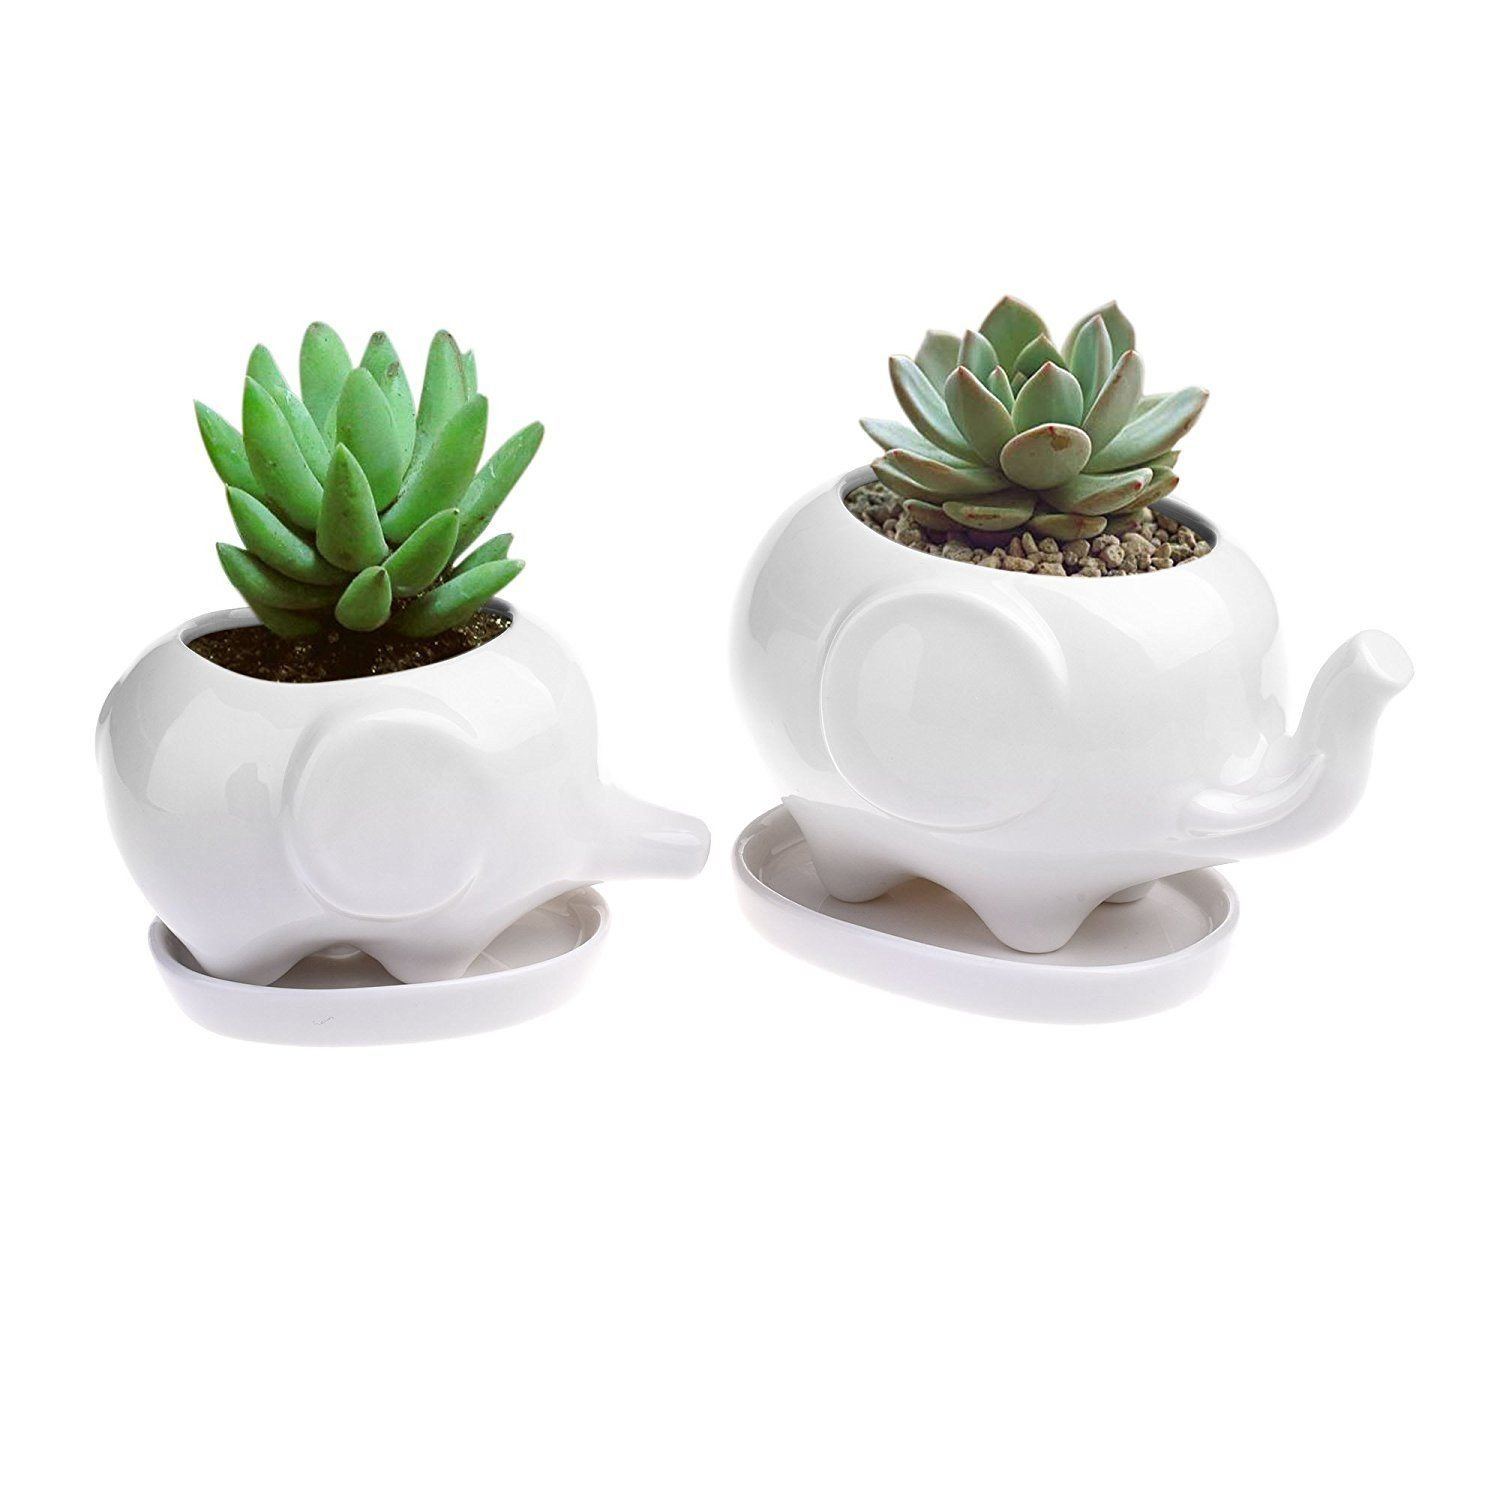 Koreyoshi 2 Pcs Elephant Plant Window Boxes with Tray Cute Elephant Flower Pot,Modern White Ceramic Succulent Planter Pots/Tiny Flower Plant Containers (Style 1)